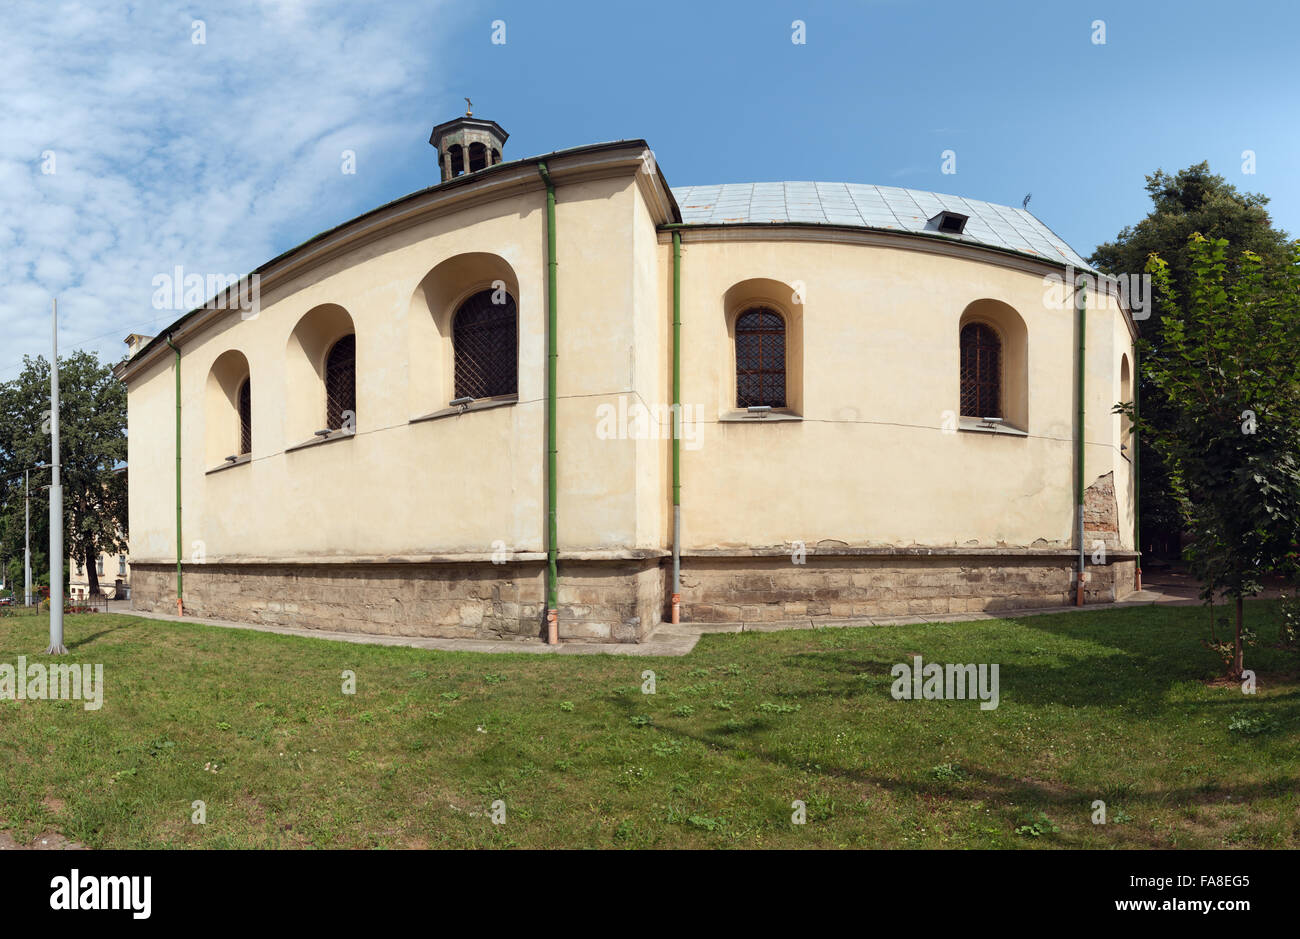 Southern side of Church of Our Lady of Perpetual Help in Lviv, former Church of st. Mary of the Snow  (14th century) - Stock Image